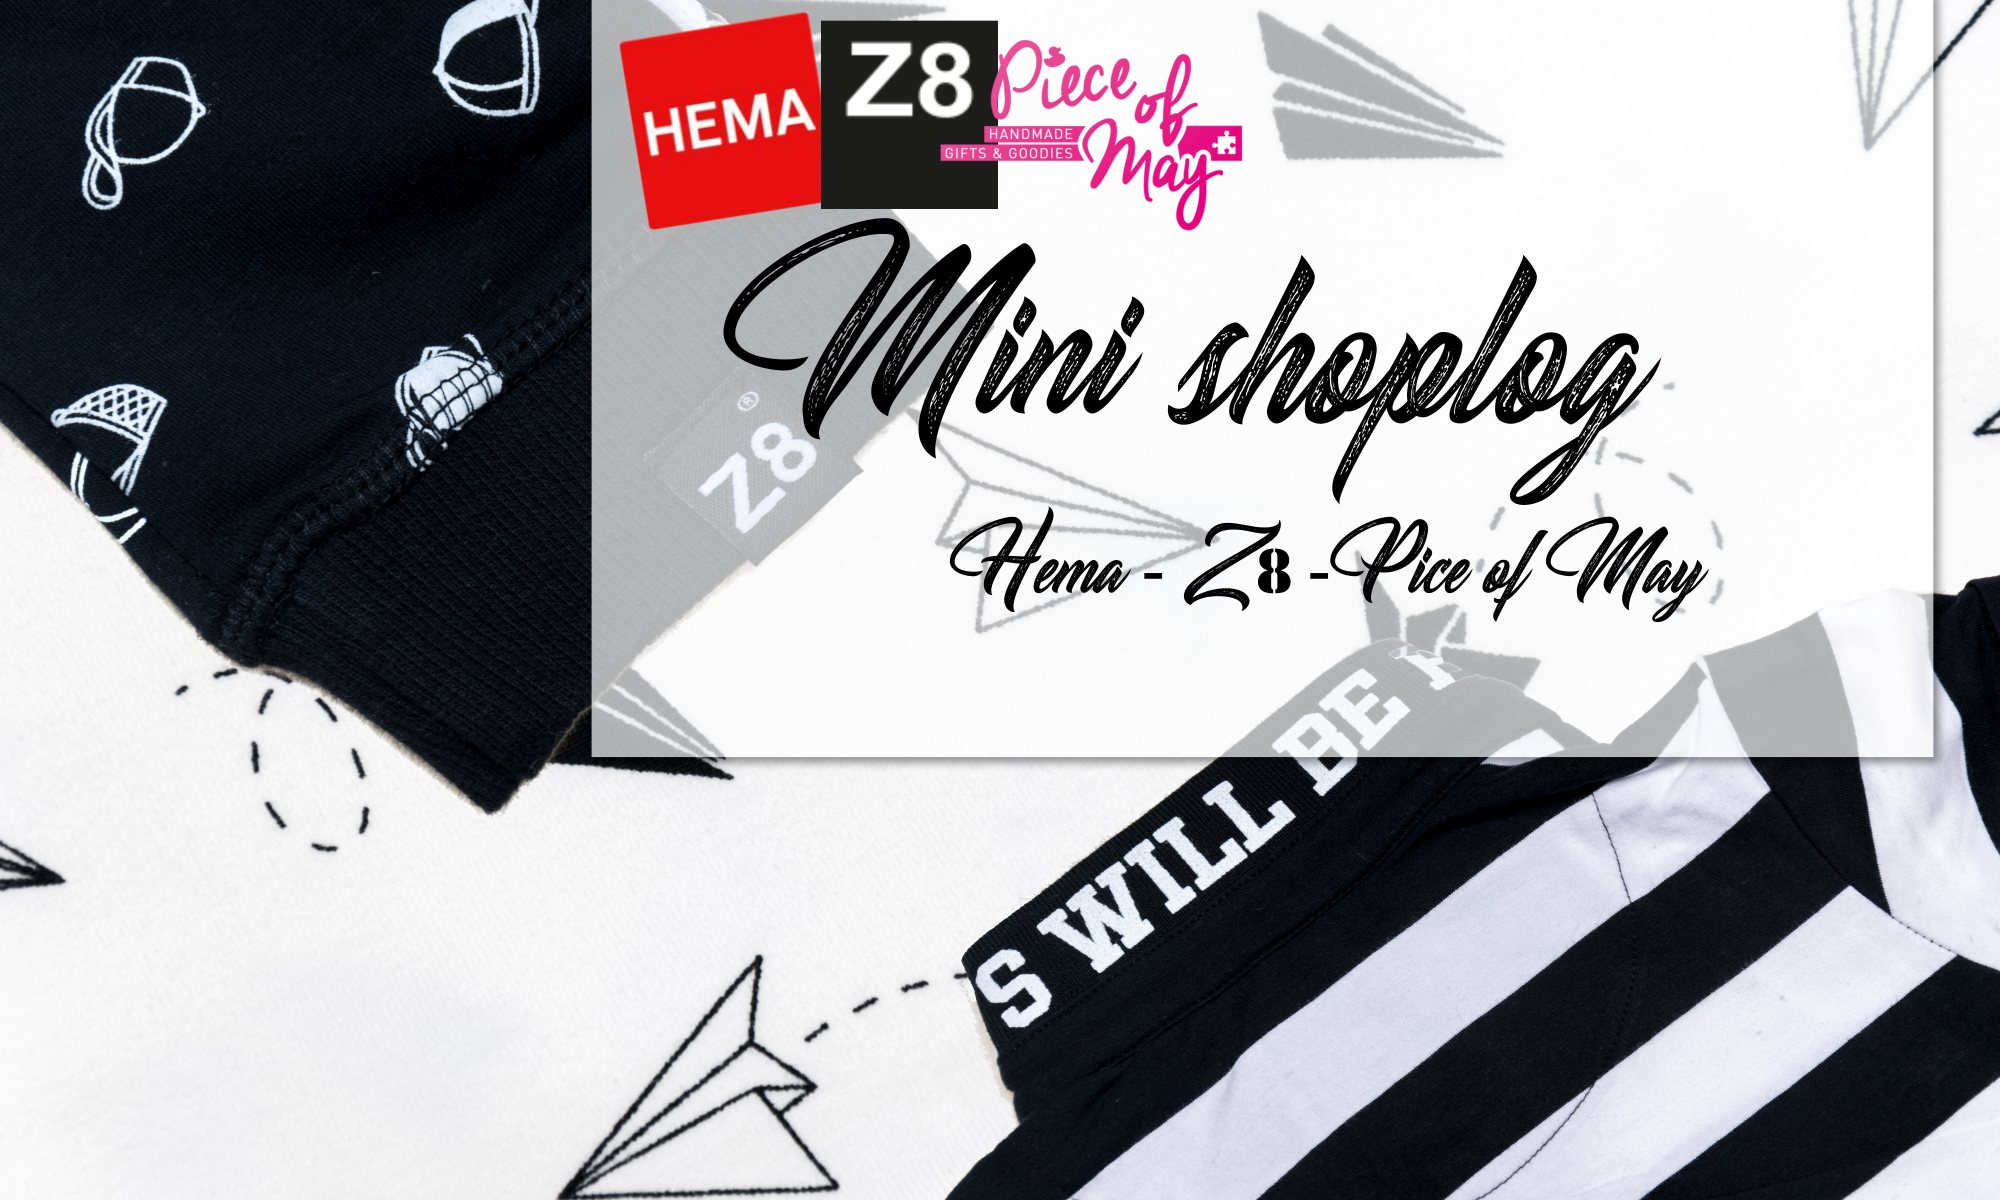 Mini shoplog babykleding z8 hema en piece of may - zwart wit jongens kleding stoer